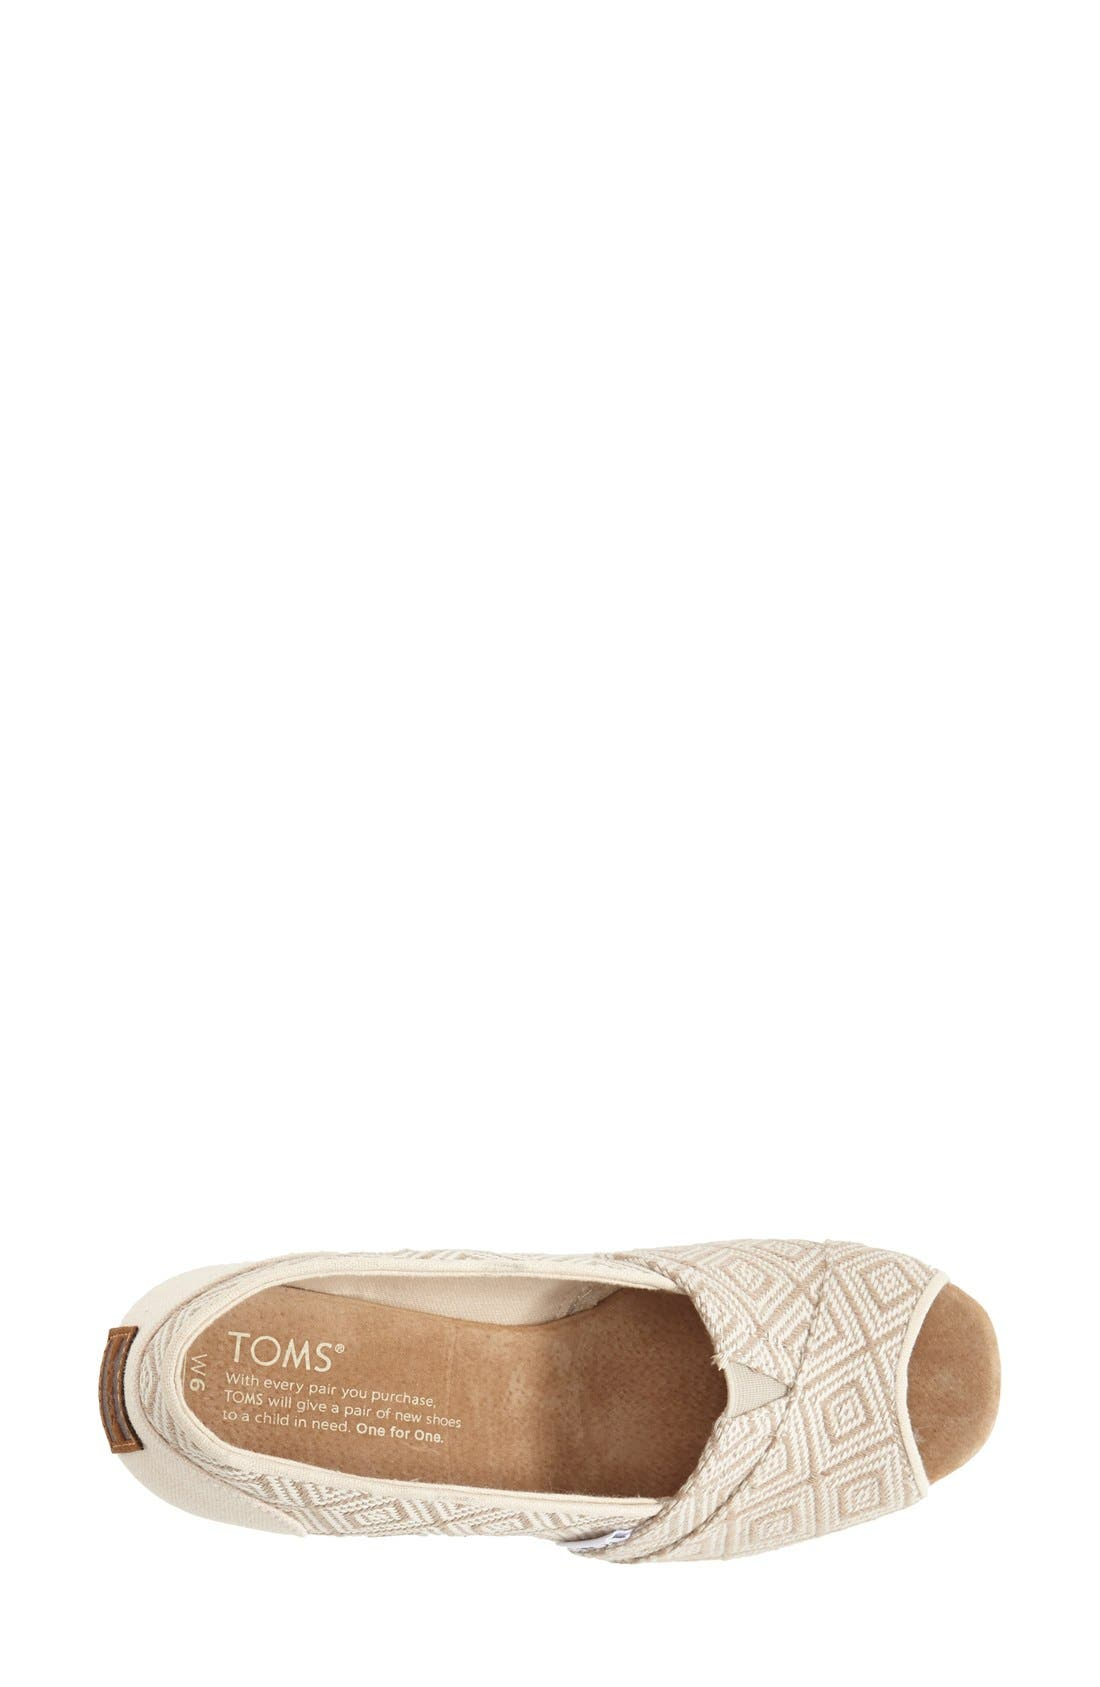 Alternate Image 3  - TOMS 'Classic' Woven Wedge Sandal (Women)